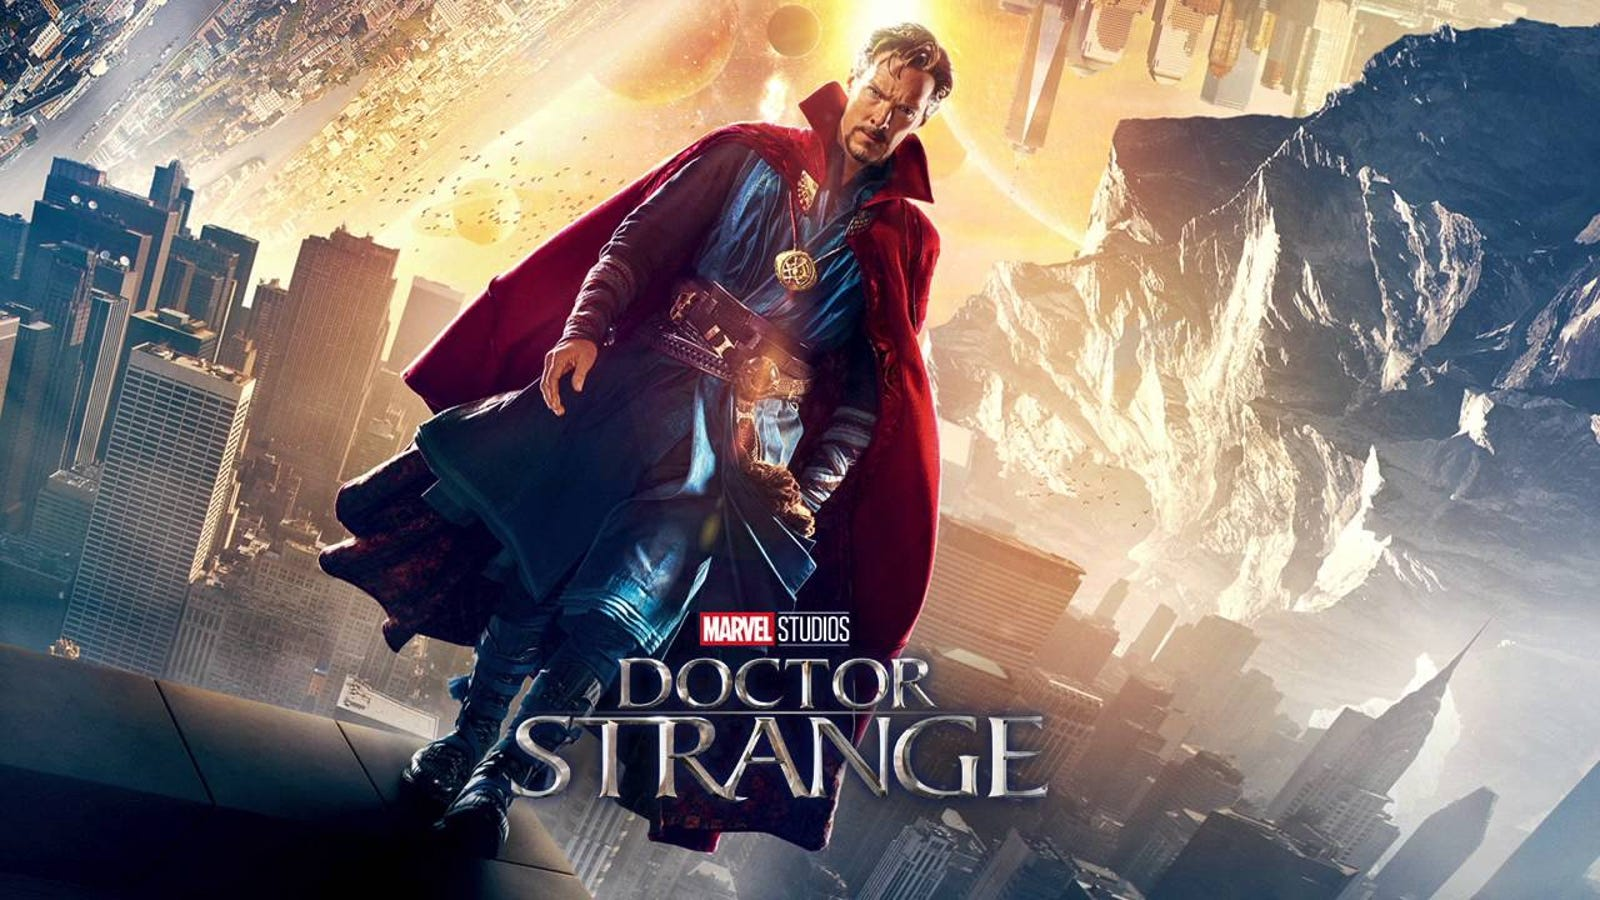 The Doctor Strange End Credits Theme Is So Weird It May Actually Be Music From Another Plane of Existence